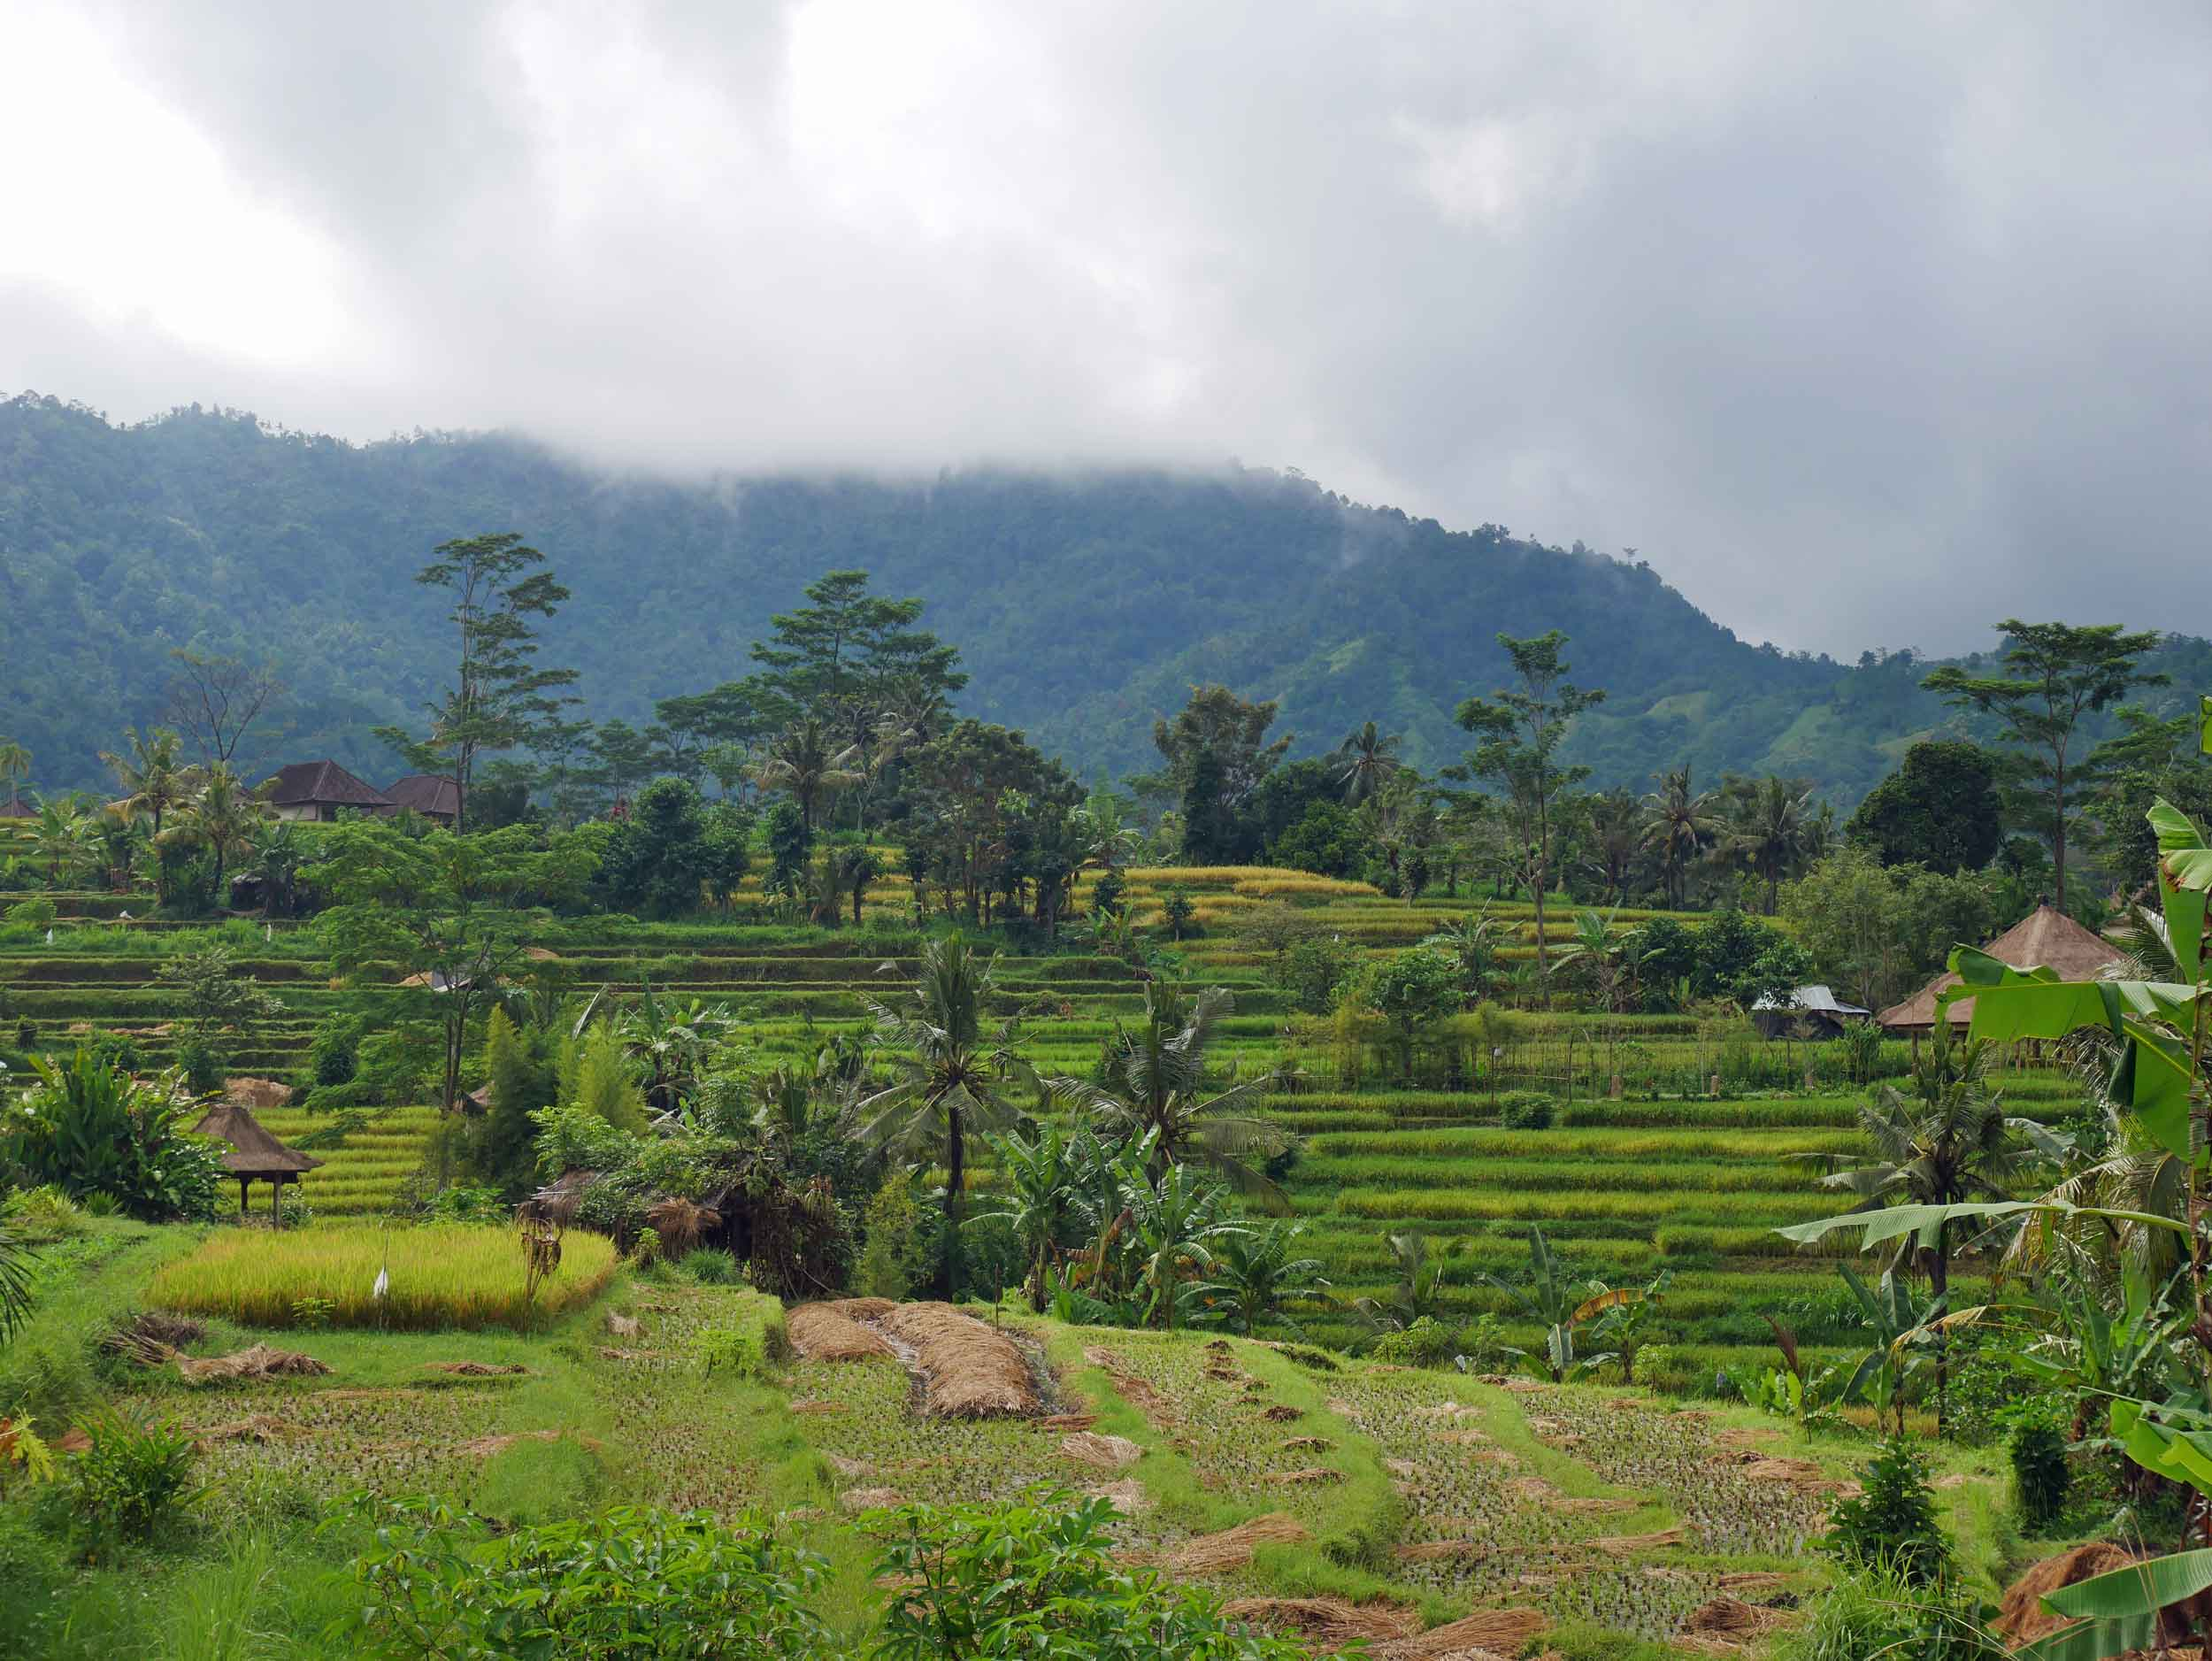 A moody landscape of the Sidemen valley with rice terraces.